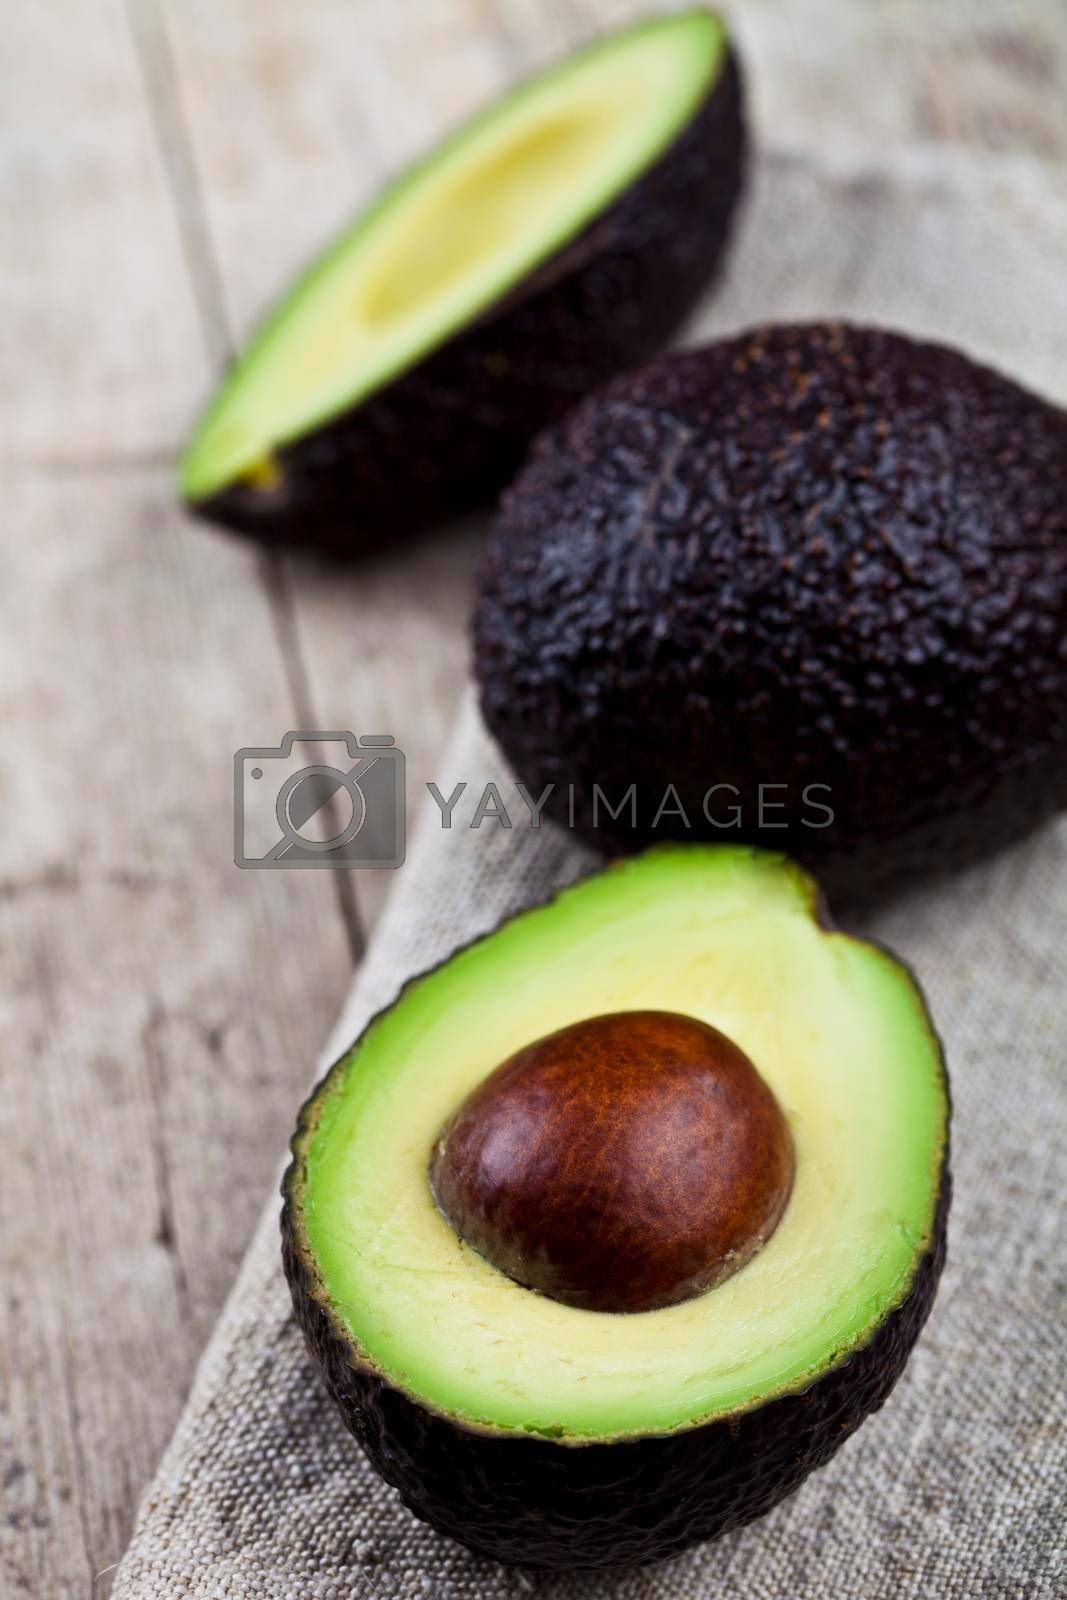 Organic avocado on linen napkin on rustic wooden table background. Fresh avocado halves on rustic wooden backround with copy space. Healthy food concept.